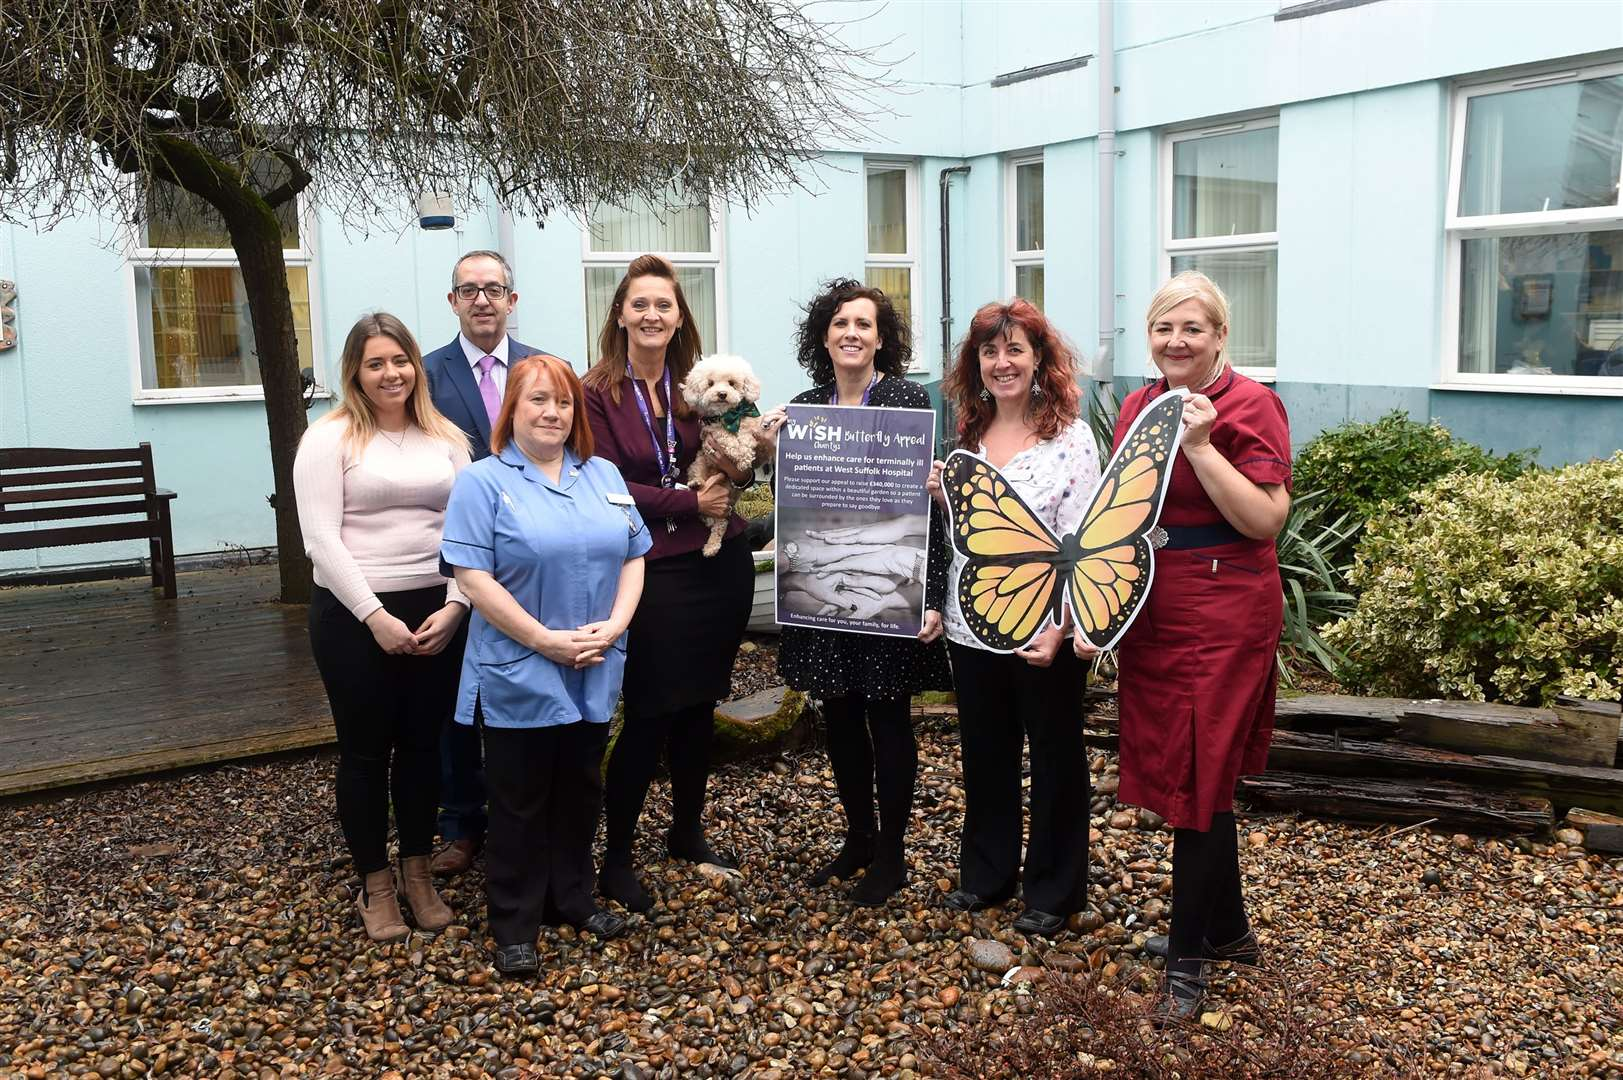 The Bury Free Press is supporting the My WiSH Butterfly Appeal, which aims to raise £340,000 to build a dedicated indoor space within a garden so patients can be surrounded by the ones they love as they prepare to say goodbye. Picture by Mecha Morton.